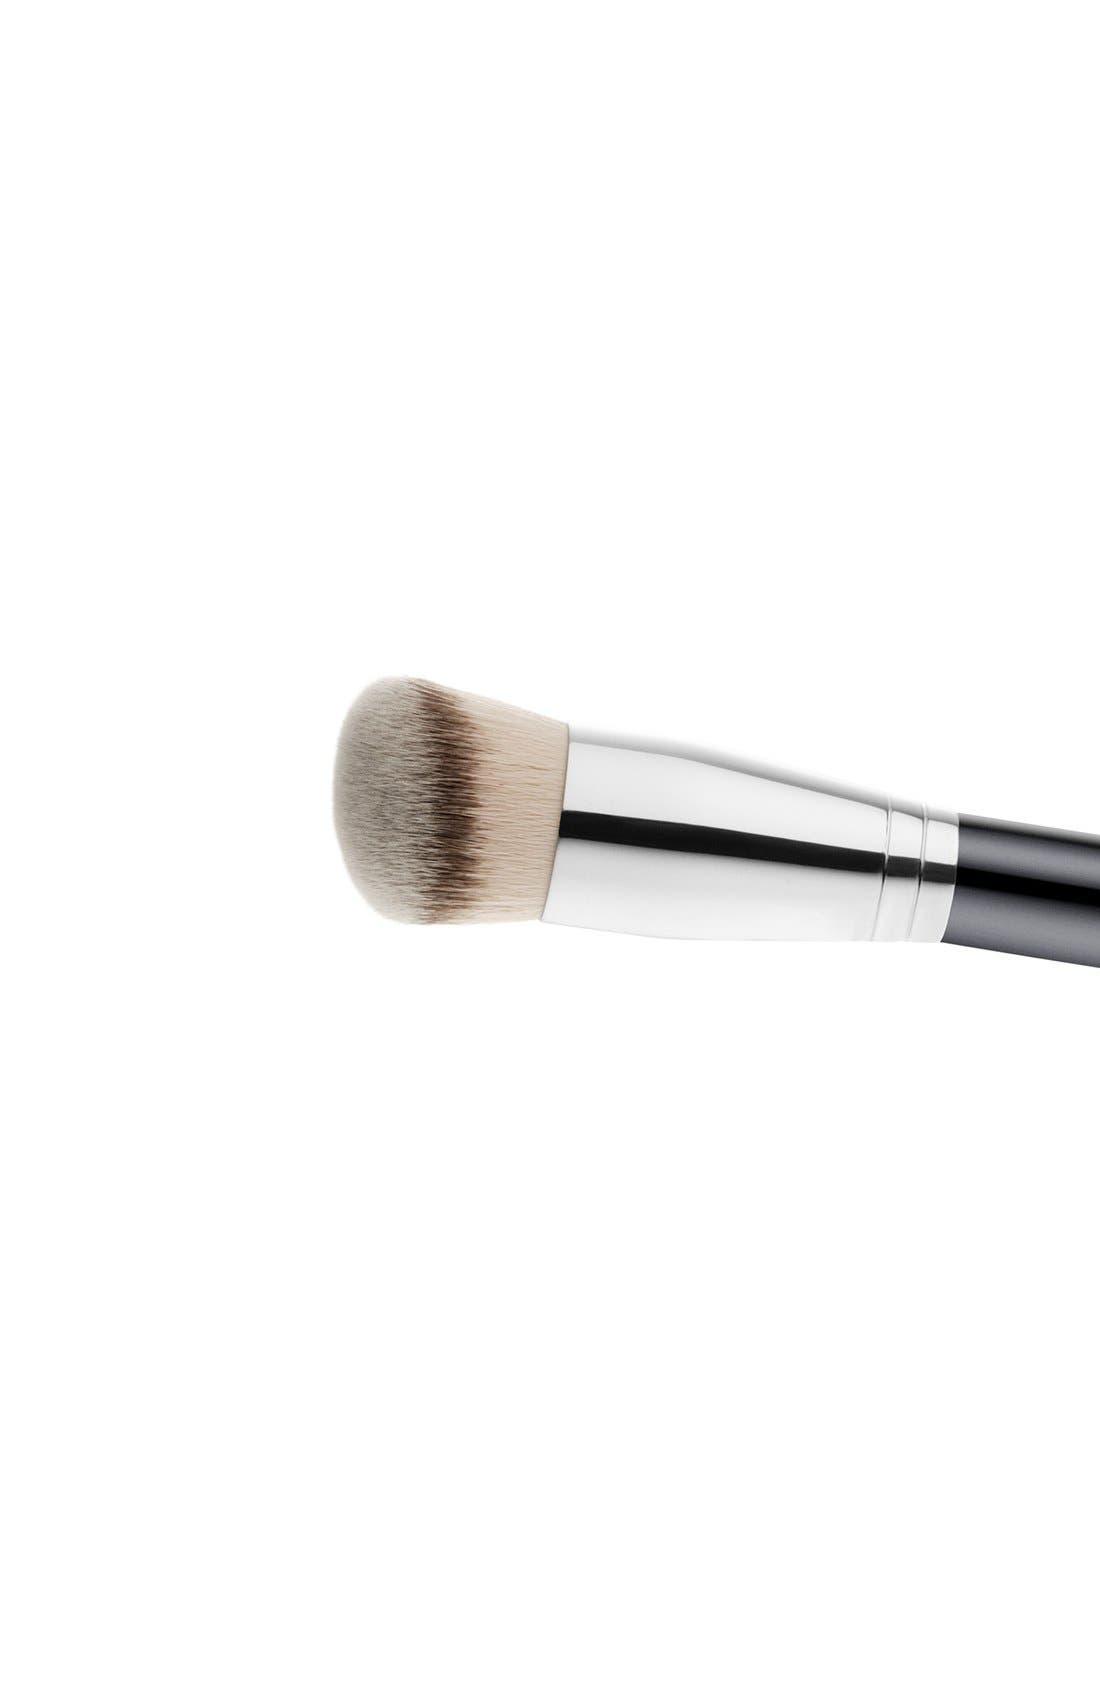 MAC 170 Synthetic Rounded Slant Brush,                             Alternate thumbnail 2, color,                             NO COLOR